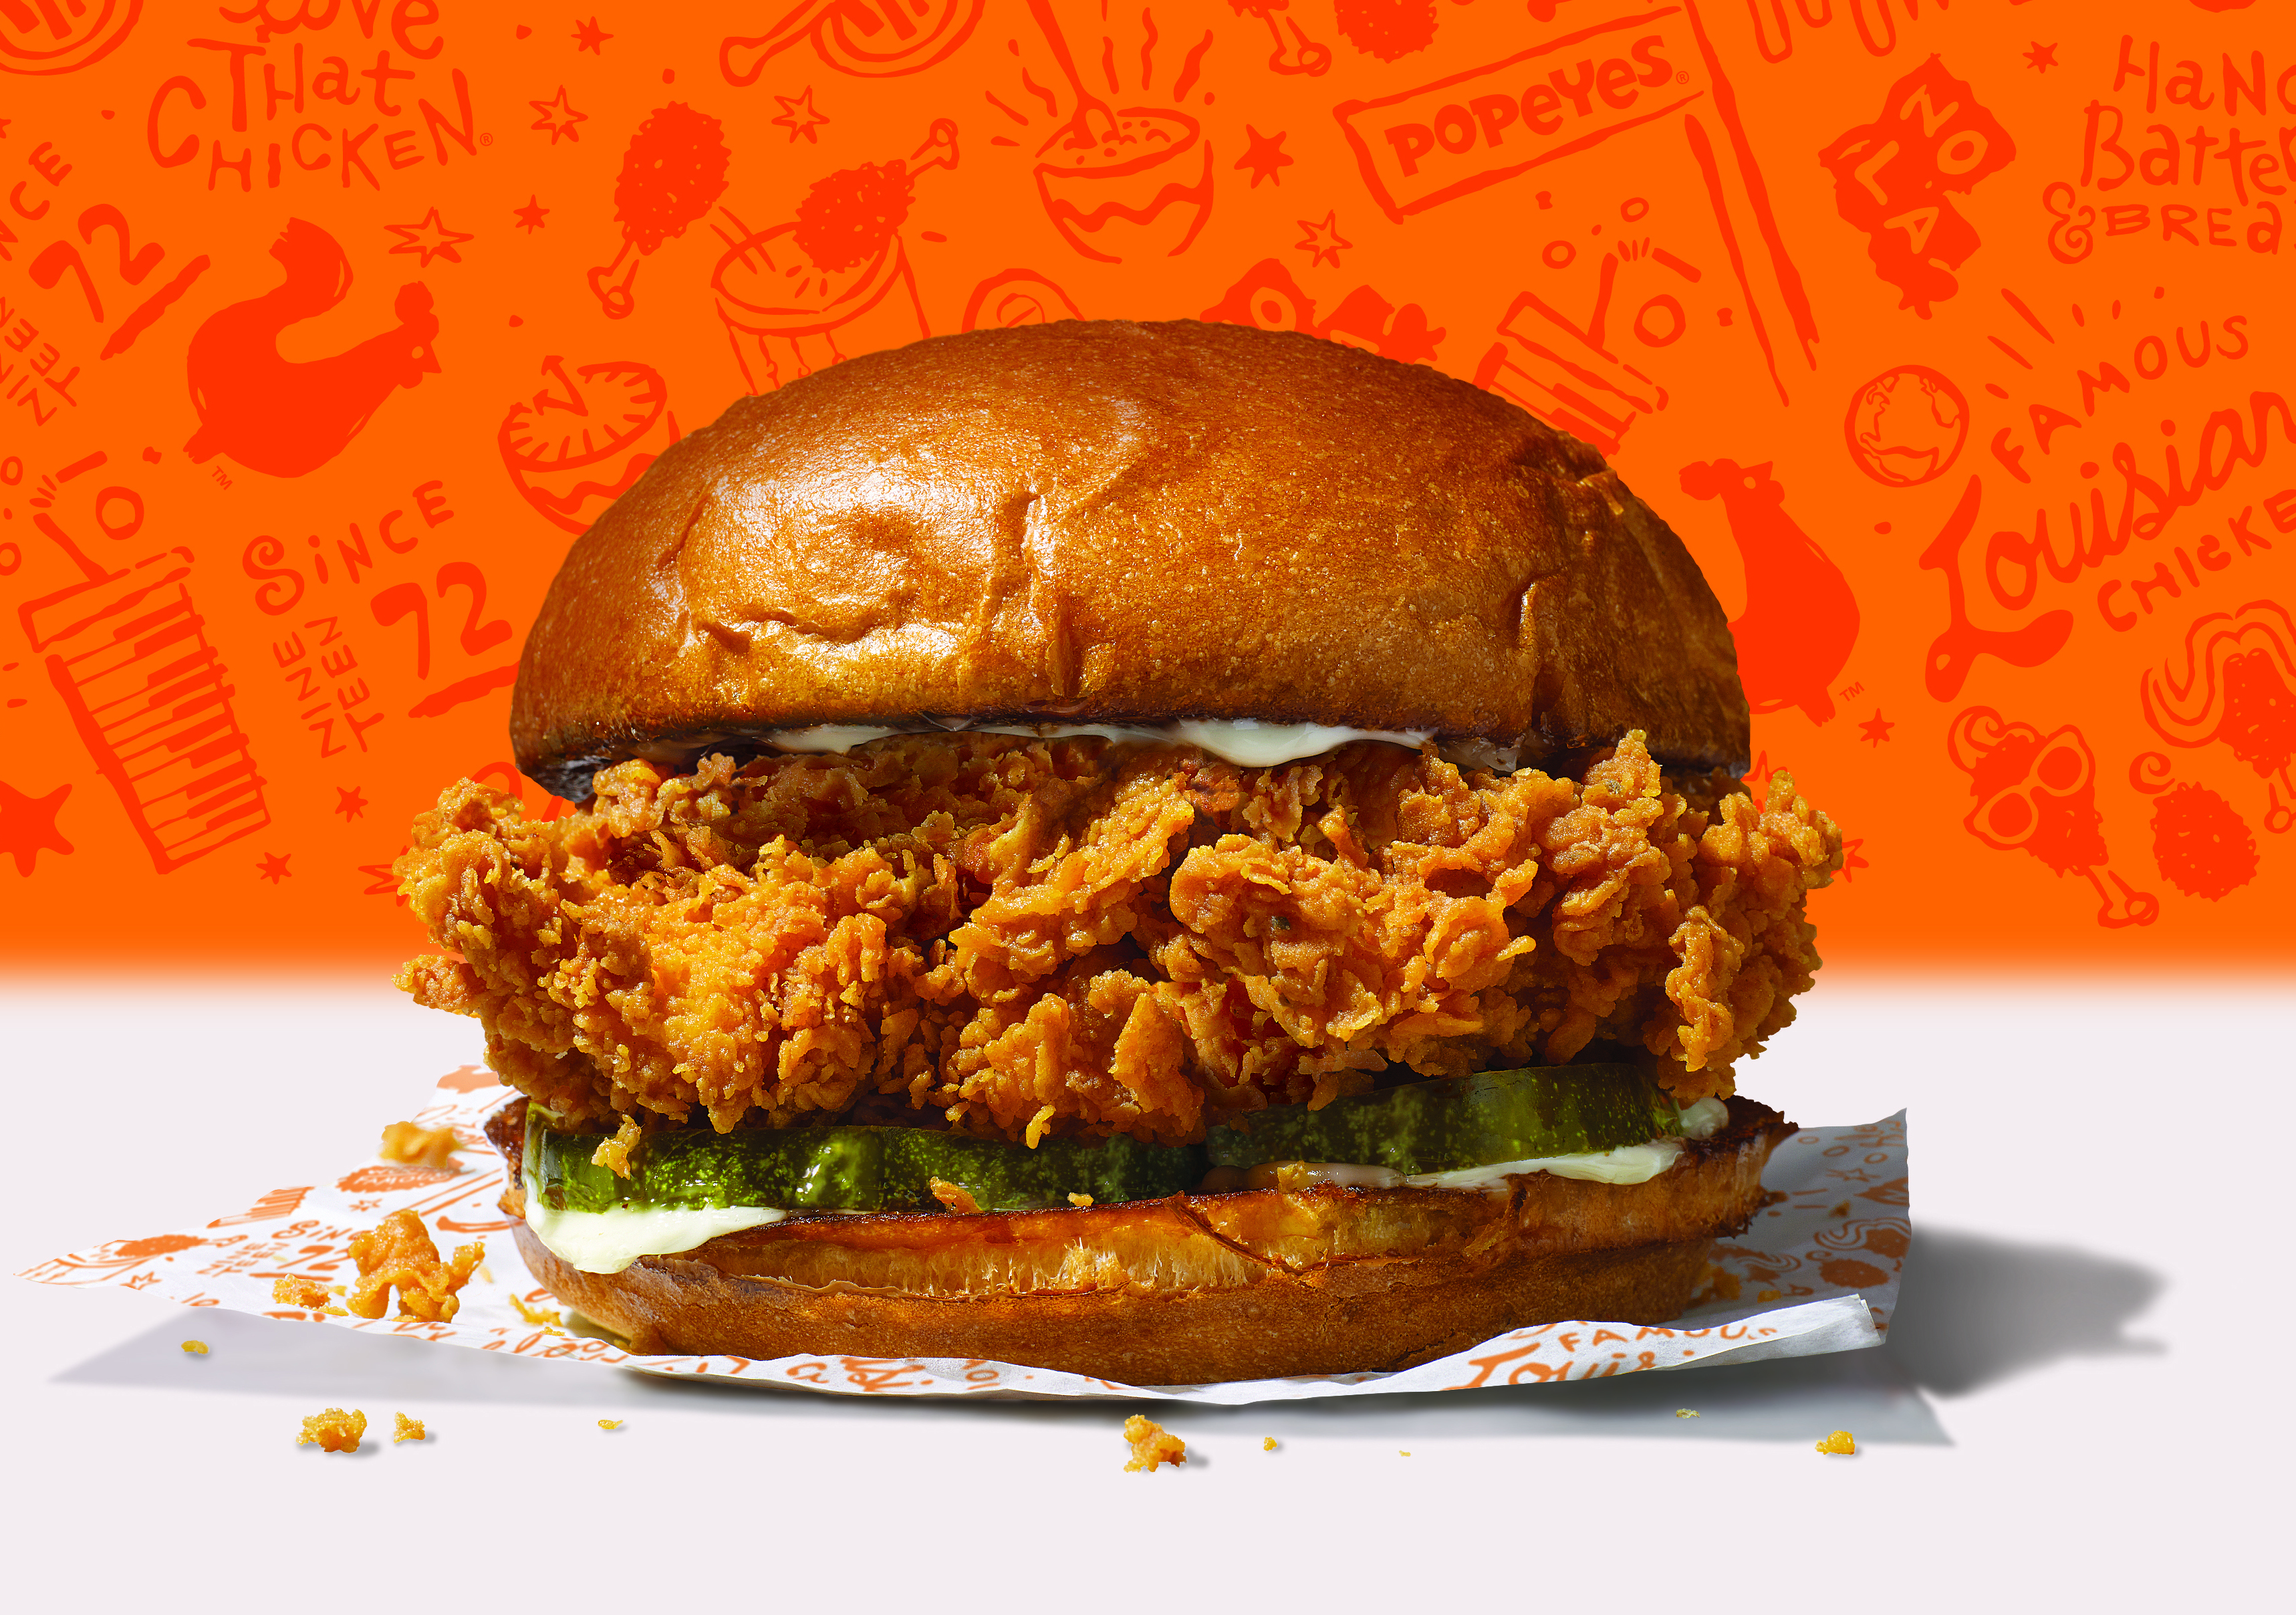 A fried chicken sandwich with a red background